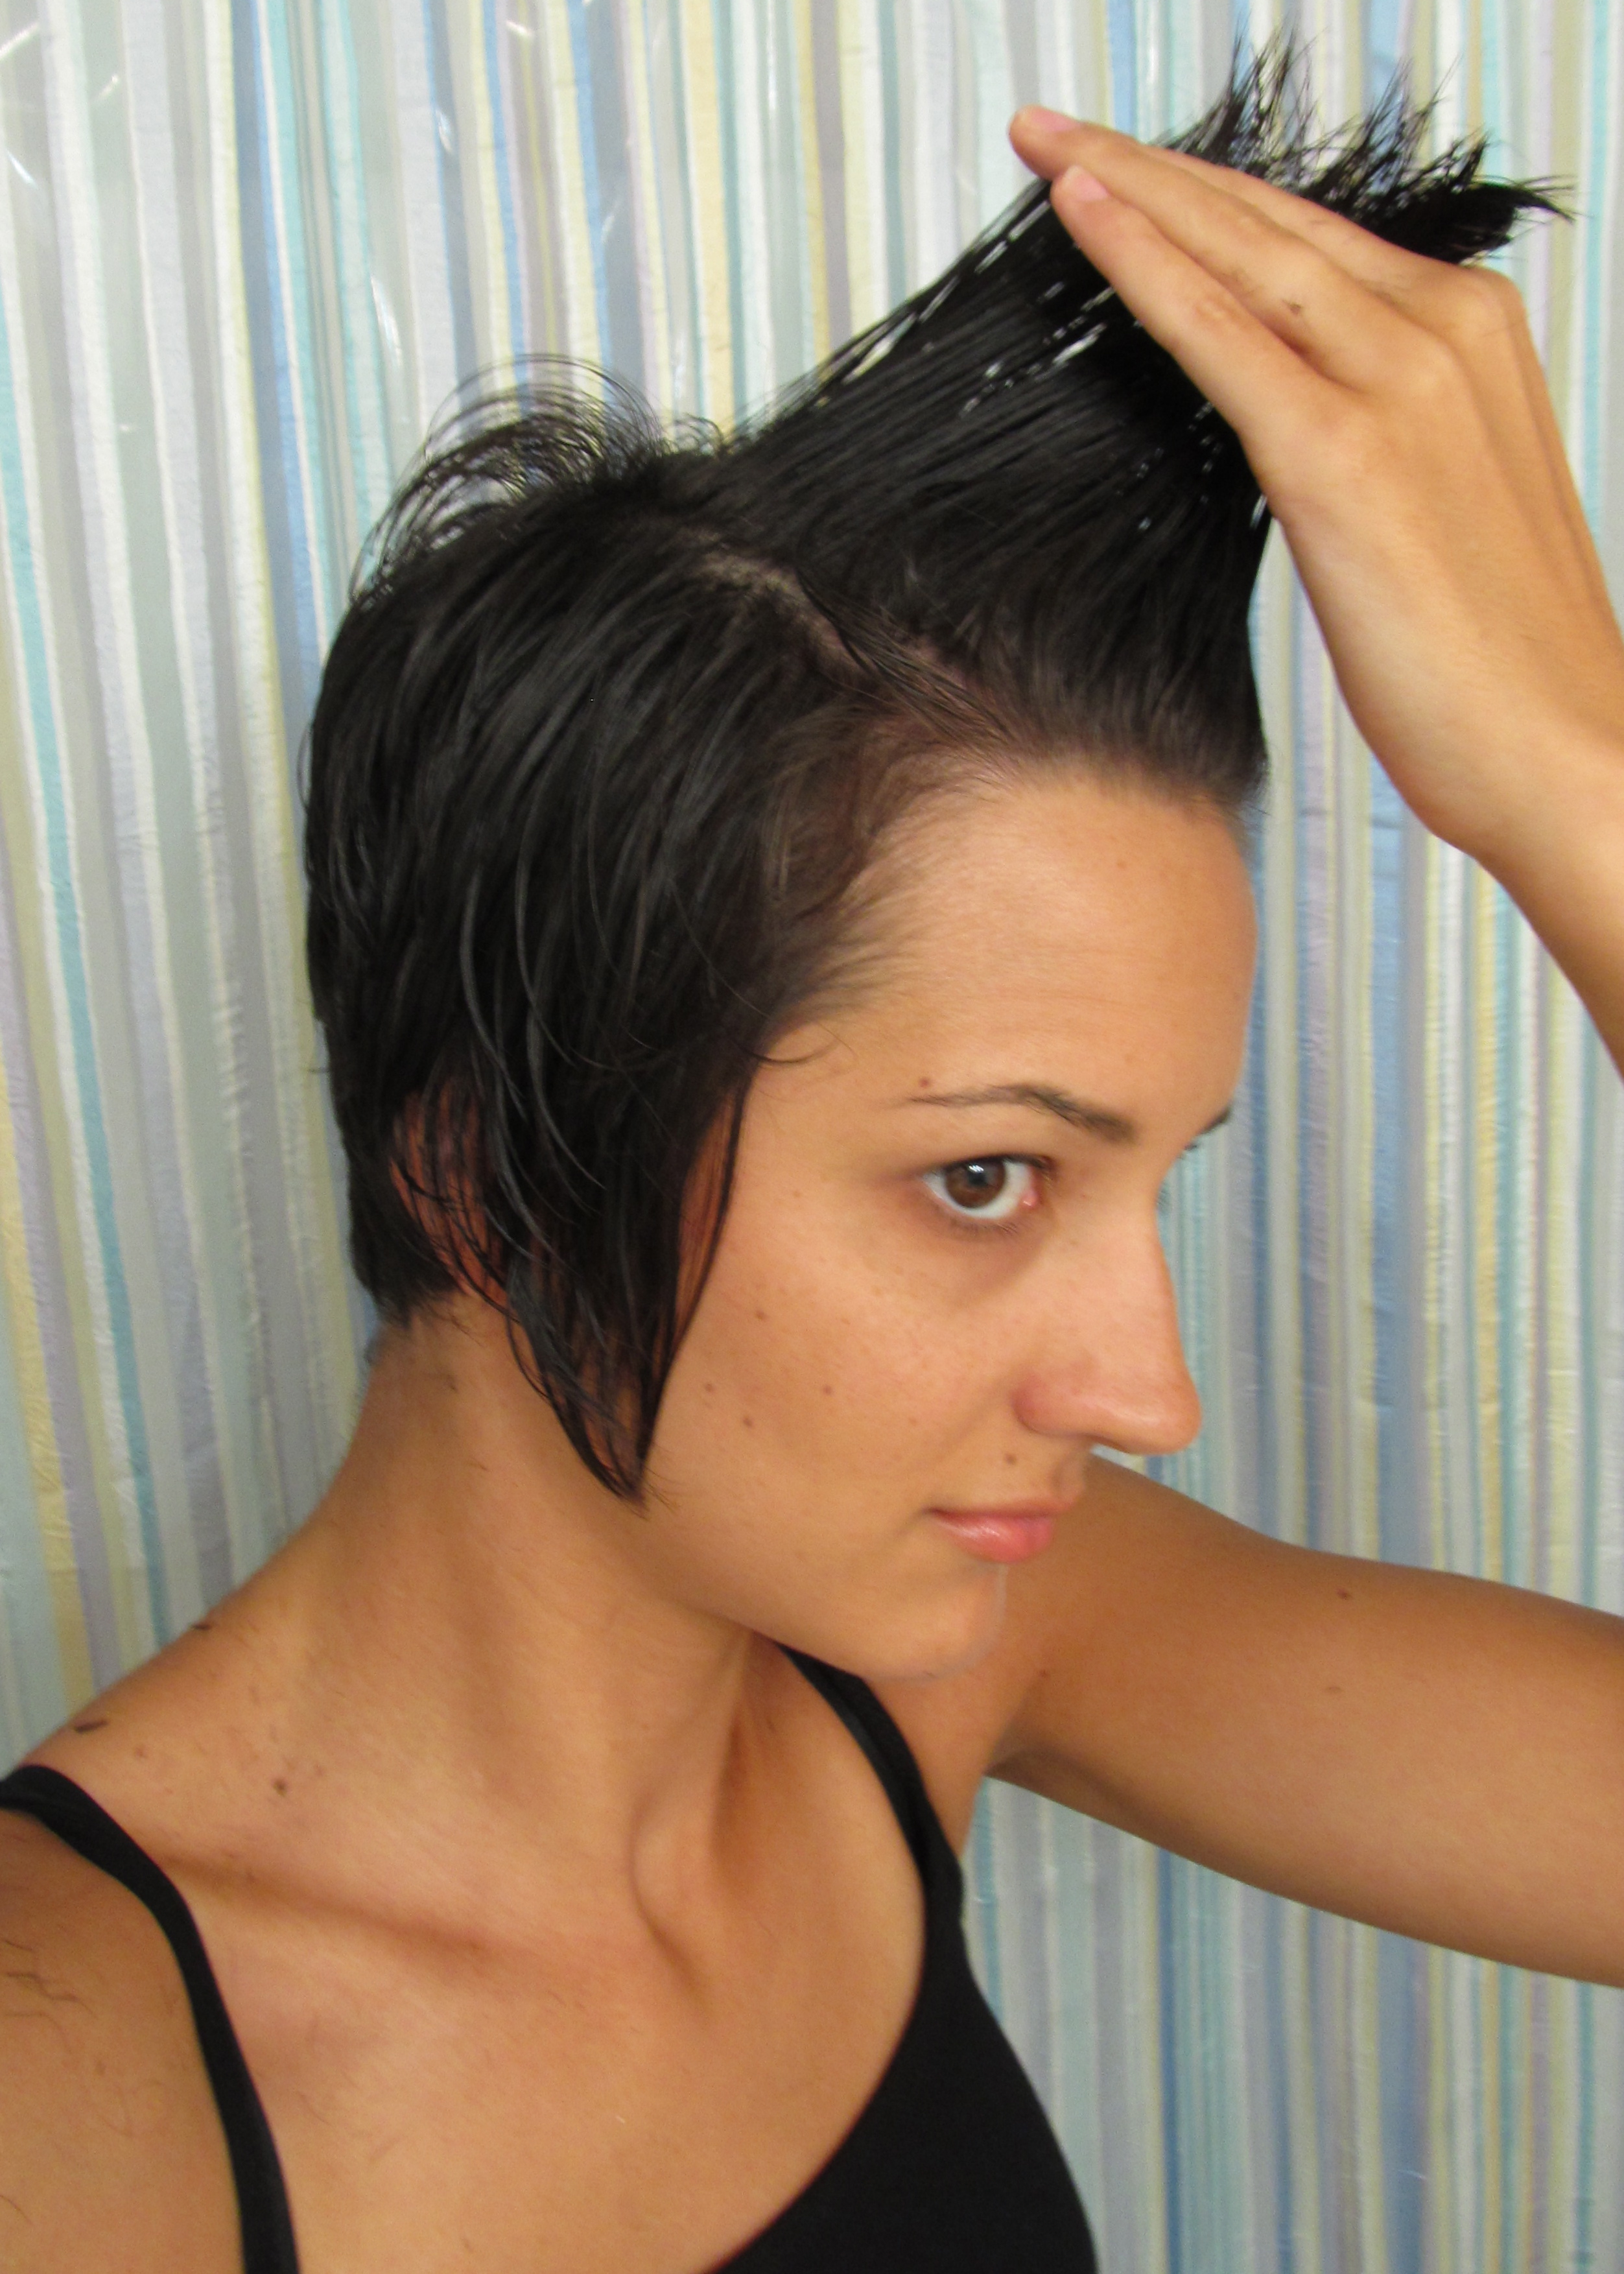 How to cut your own hair and save. Start with a trim to practice and